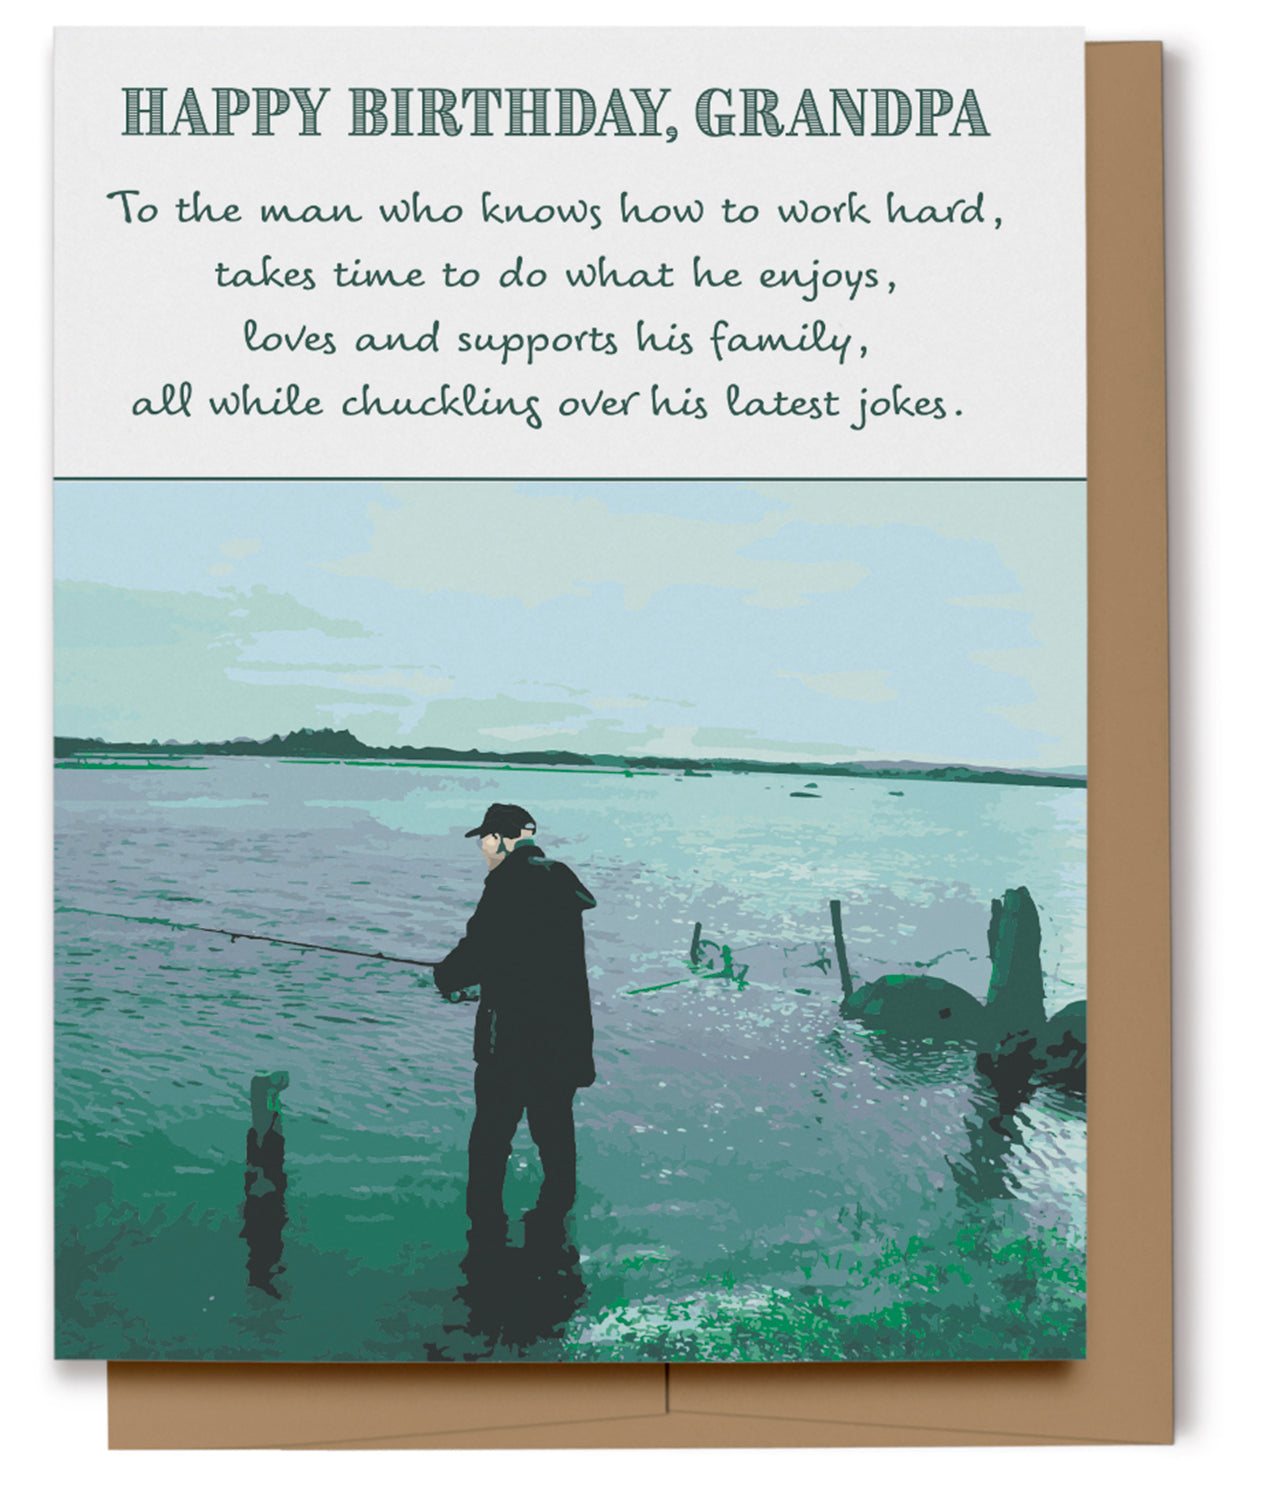 Happy Birthday Grandpa Fishing Card (100% Recycled)